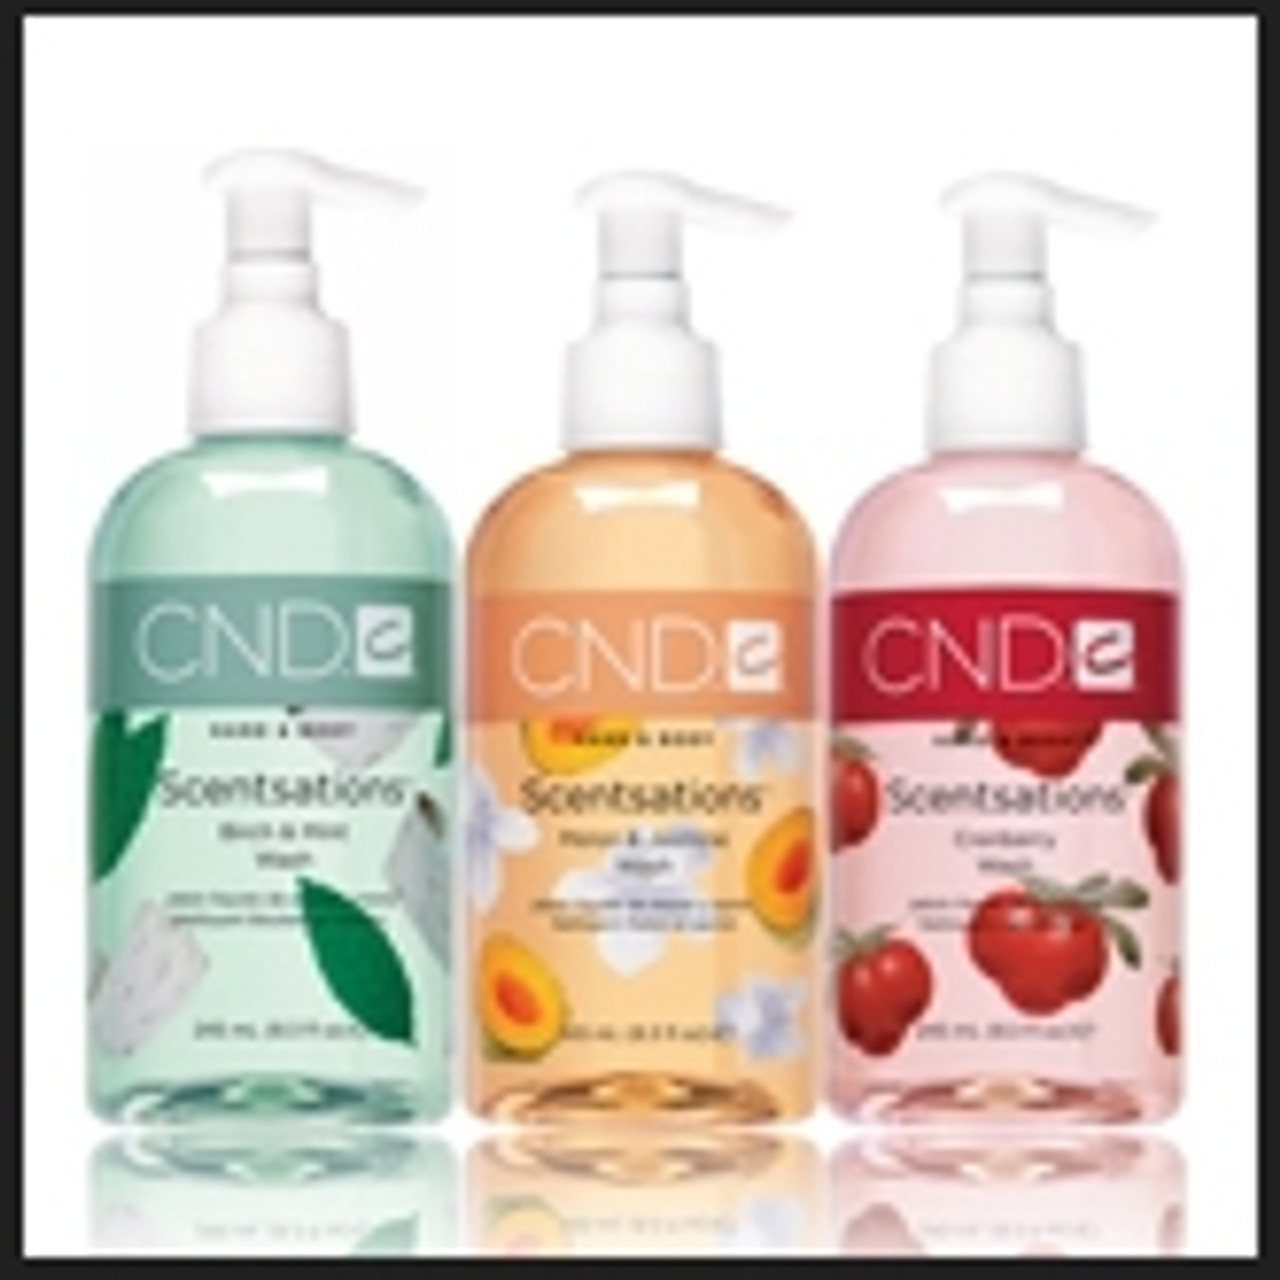 CND Scentsations™ Hand & Body Lotions